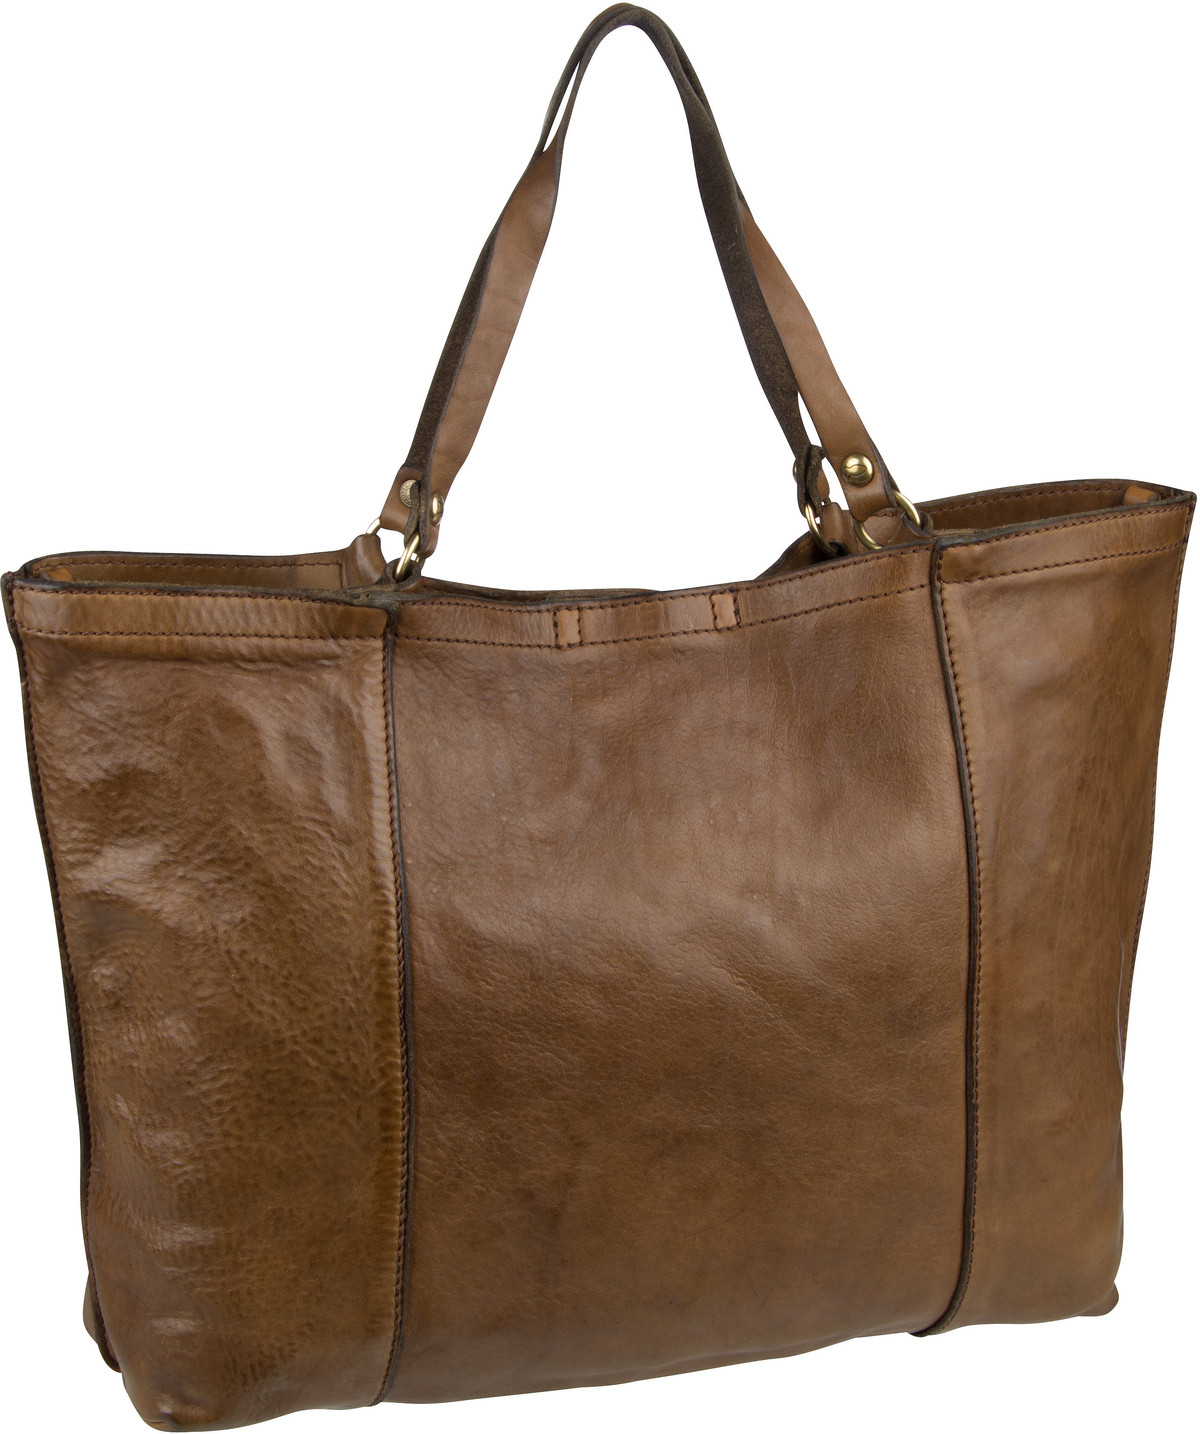 Shopper Calipso C17080 Verde Militare